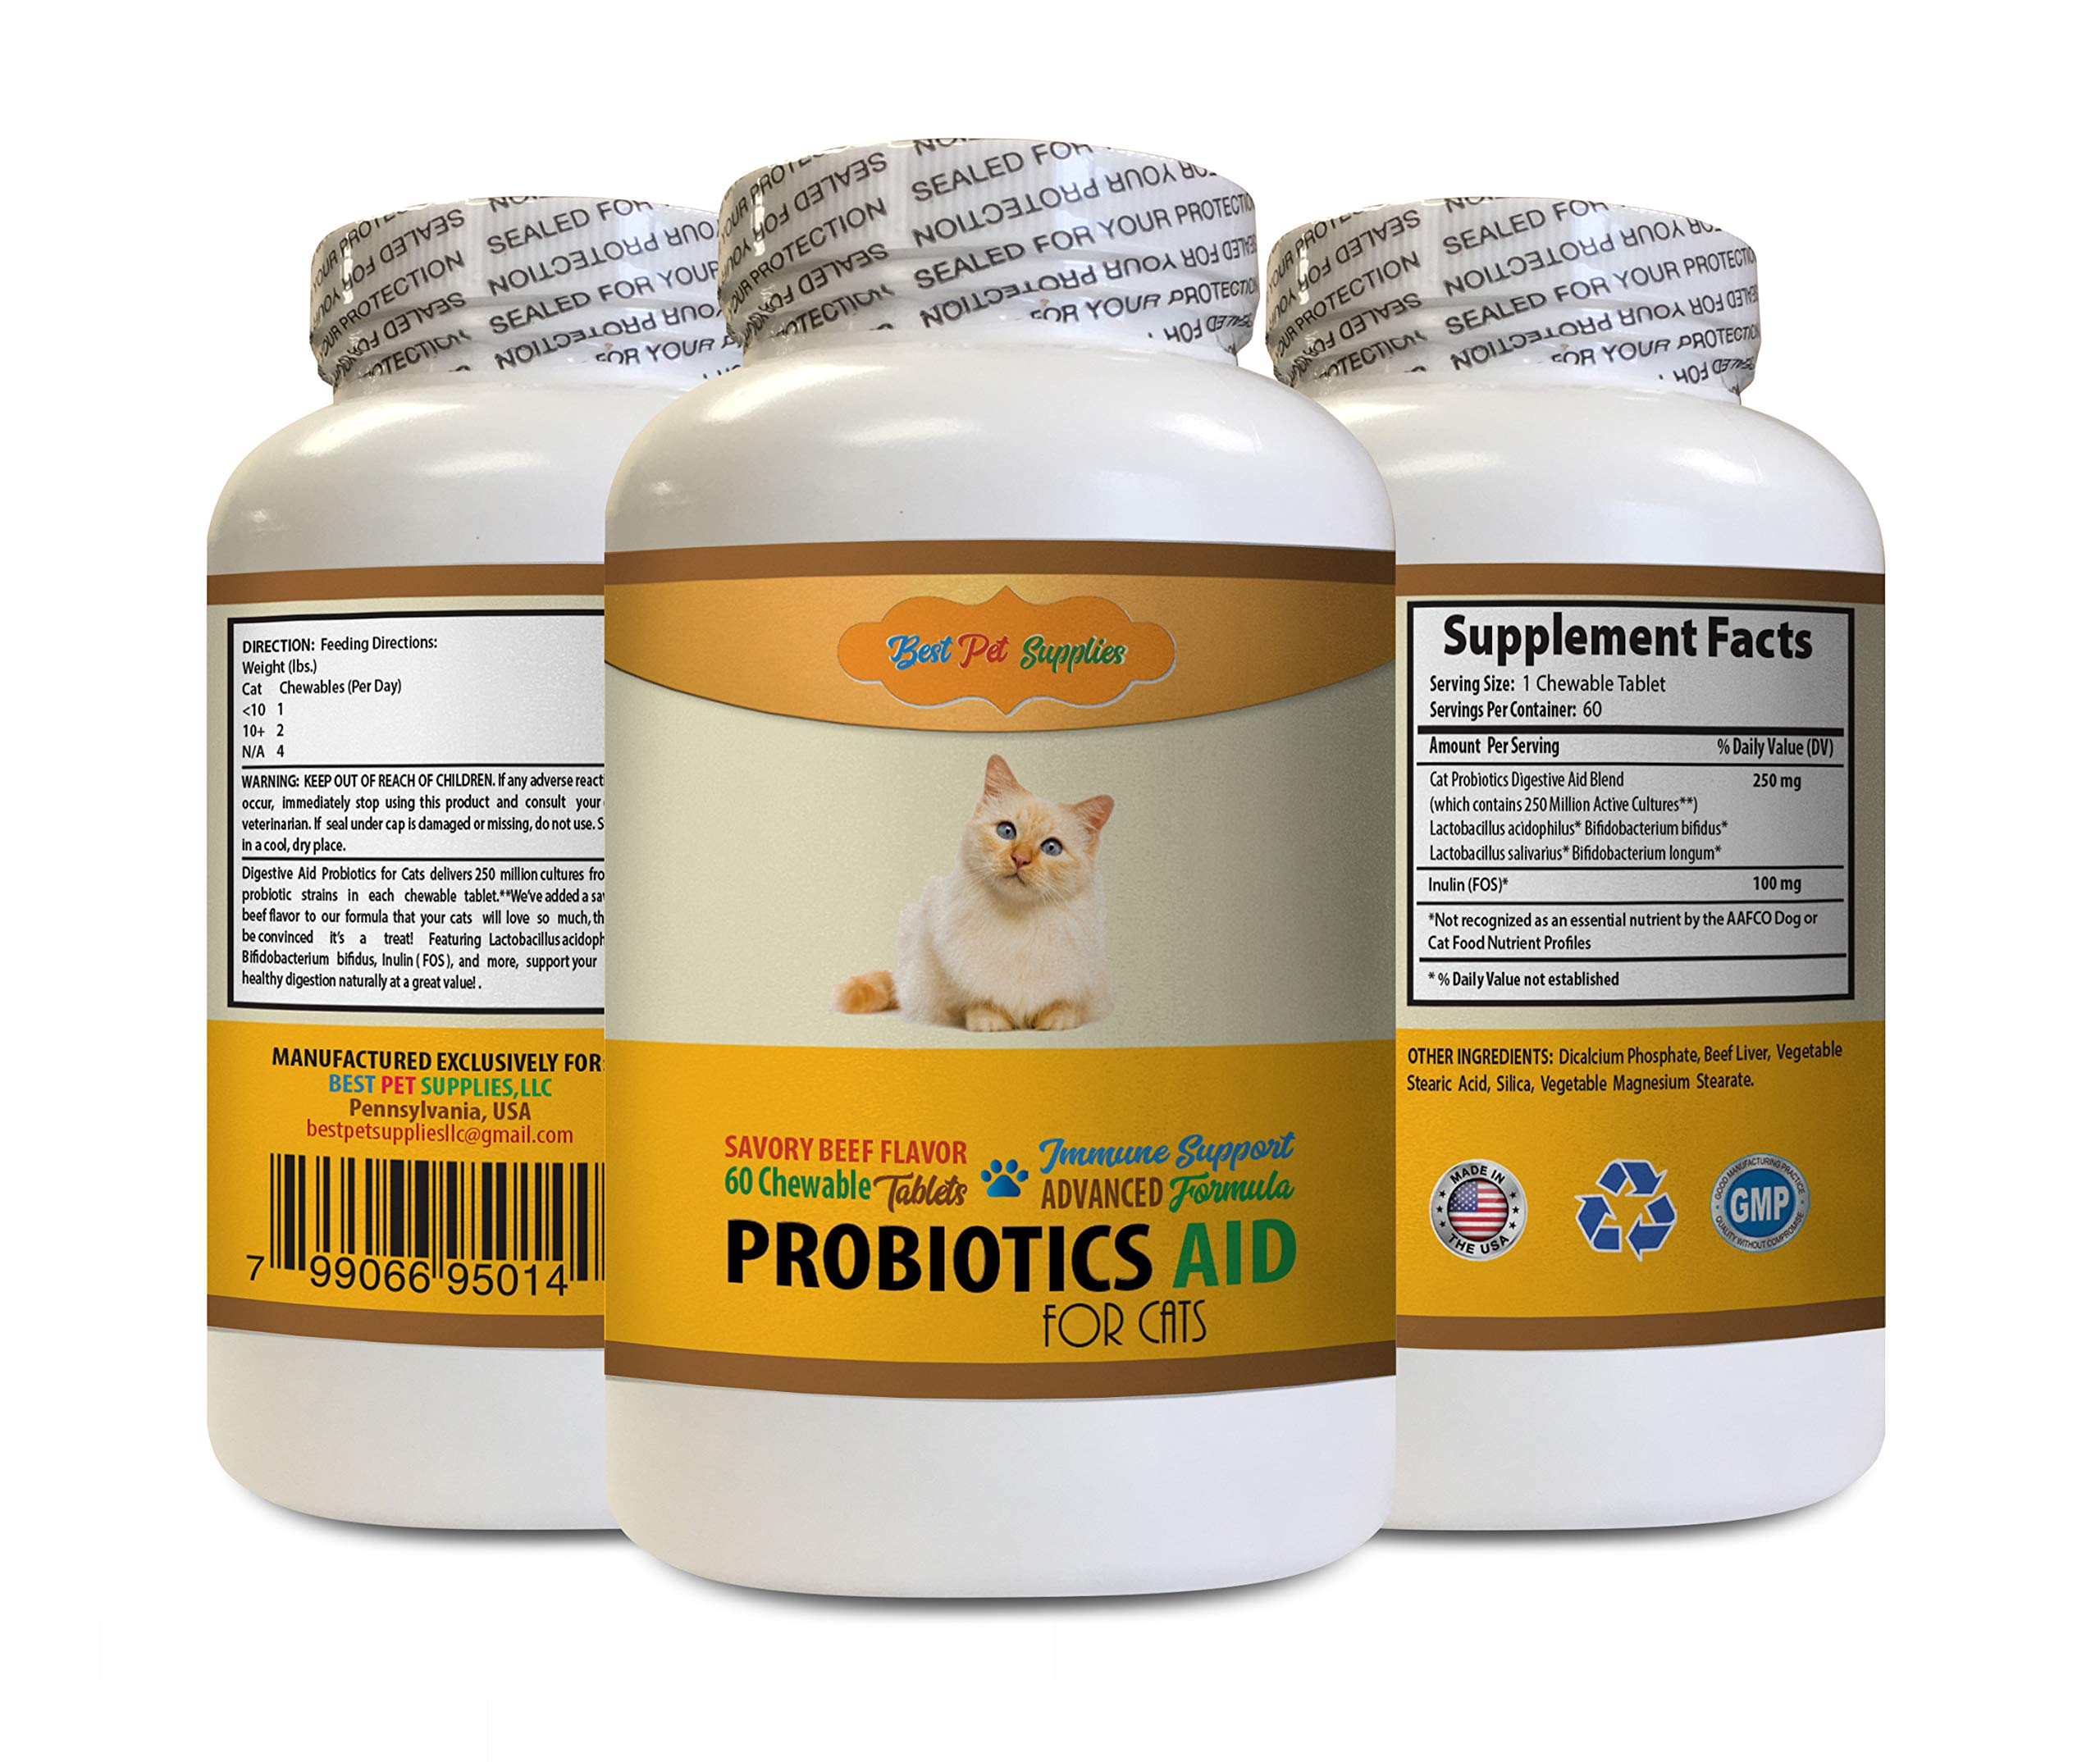 BEST PET SUPPLIES LLC cat probiotics Immune - PROBIOTICS AID for Cats - Immune Support - Healthy Digestive Tract - acidophilus for Cats - 1 Bottle (60 Treats) by BEST PET SUPPLIES LLC